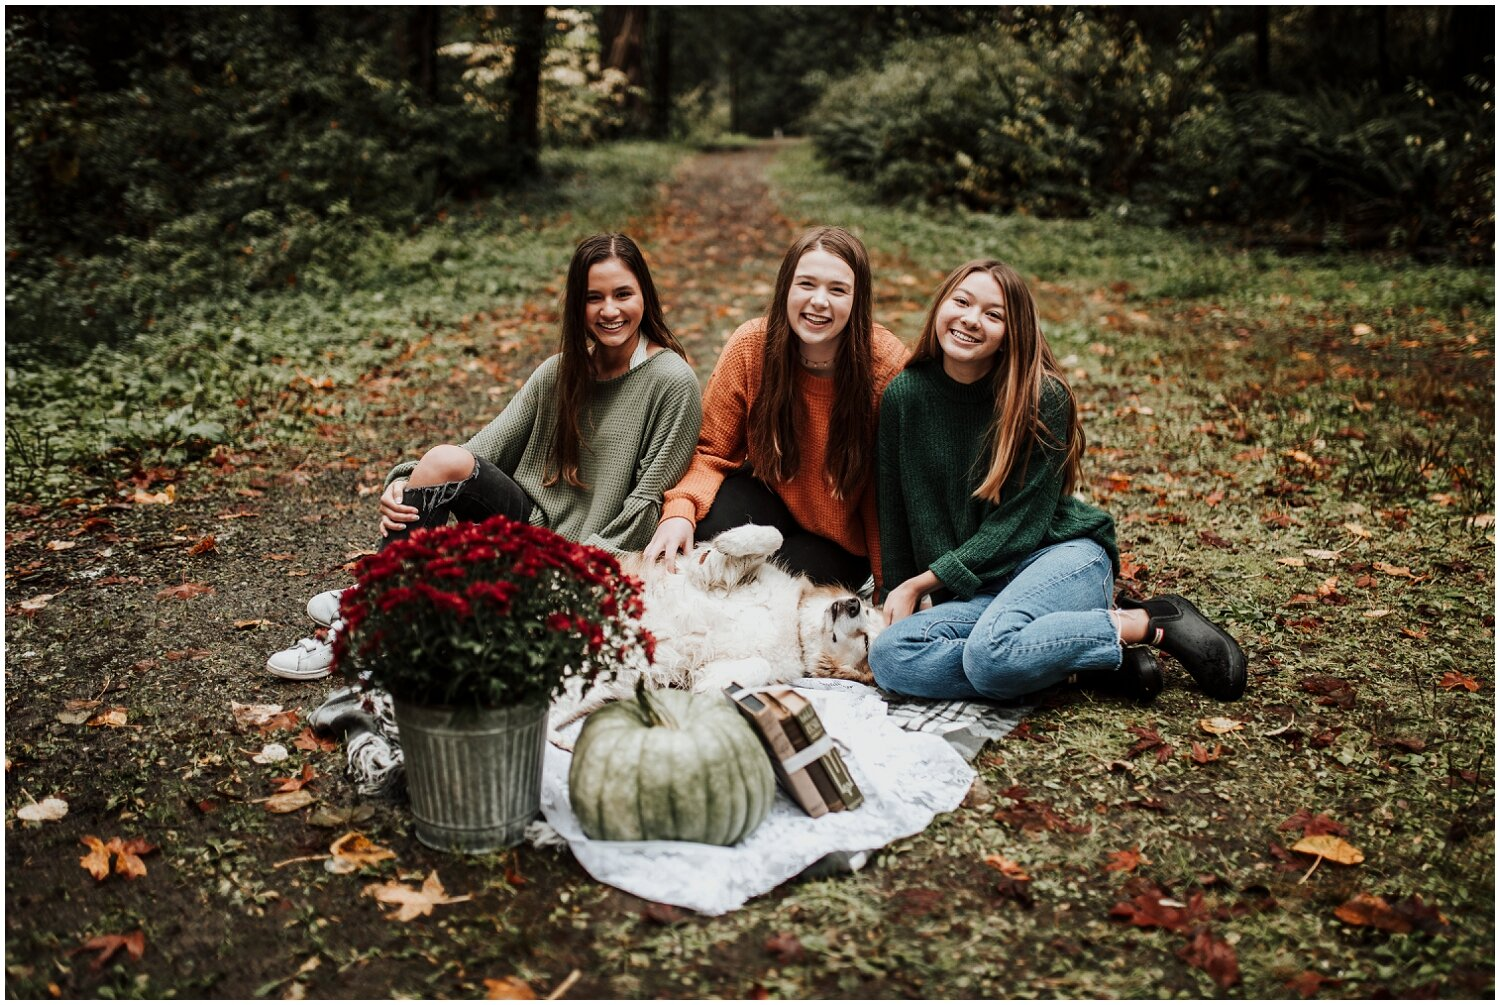 brittingham_photography_orting_washington_photographer_fall_holiday_mini_sessions_0014.jpg